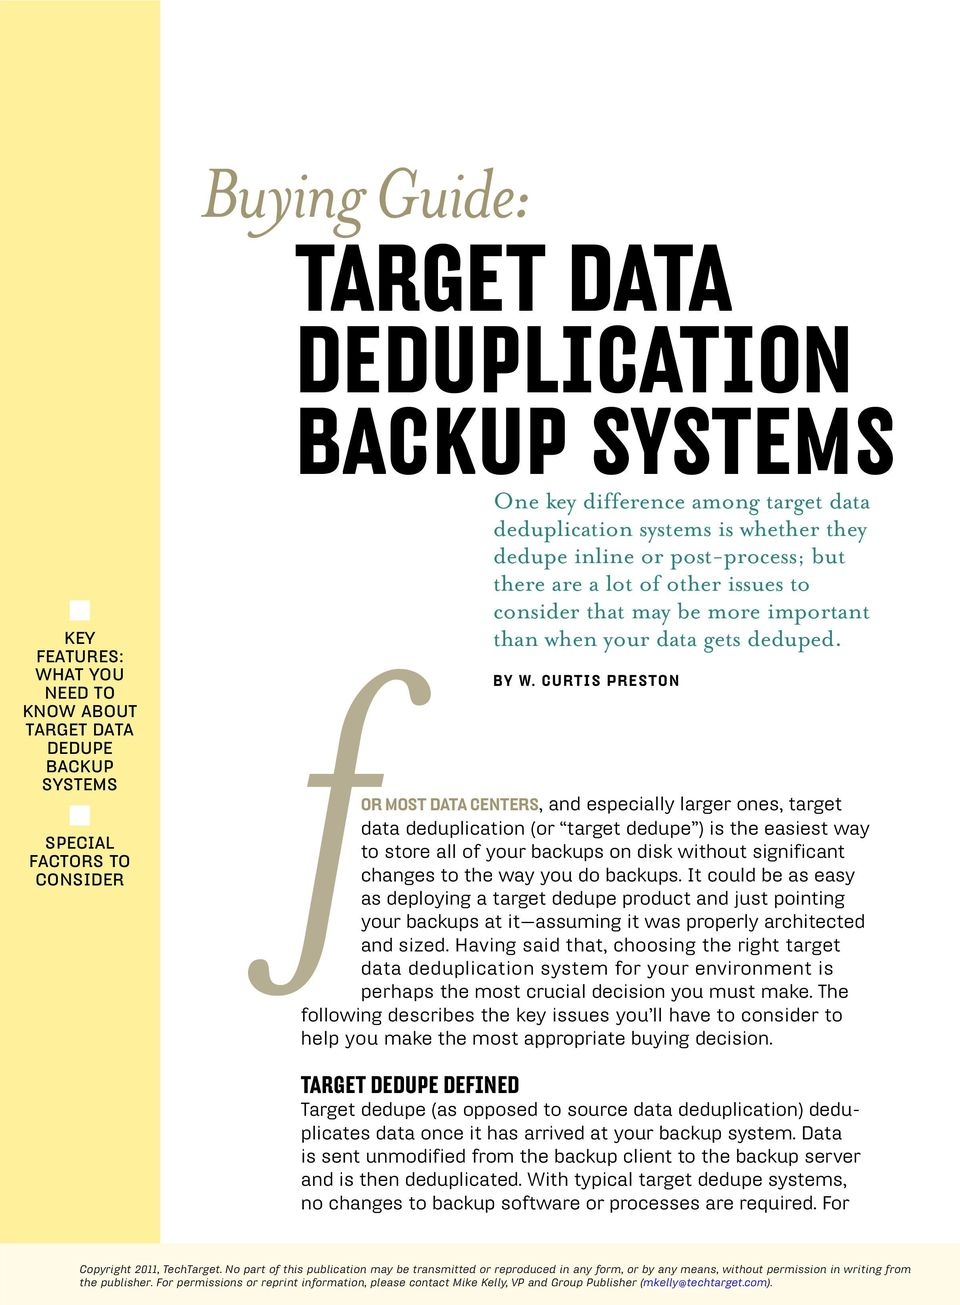 CURTIS PRESTON OR MOST DATA CENTERS, and especially larger ones, target data deduplication (or target dedupe ) is the easiest way to store all of your backups on disk without significant changes to